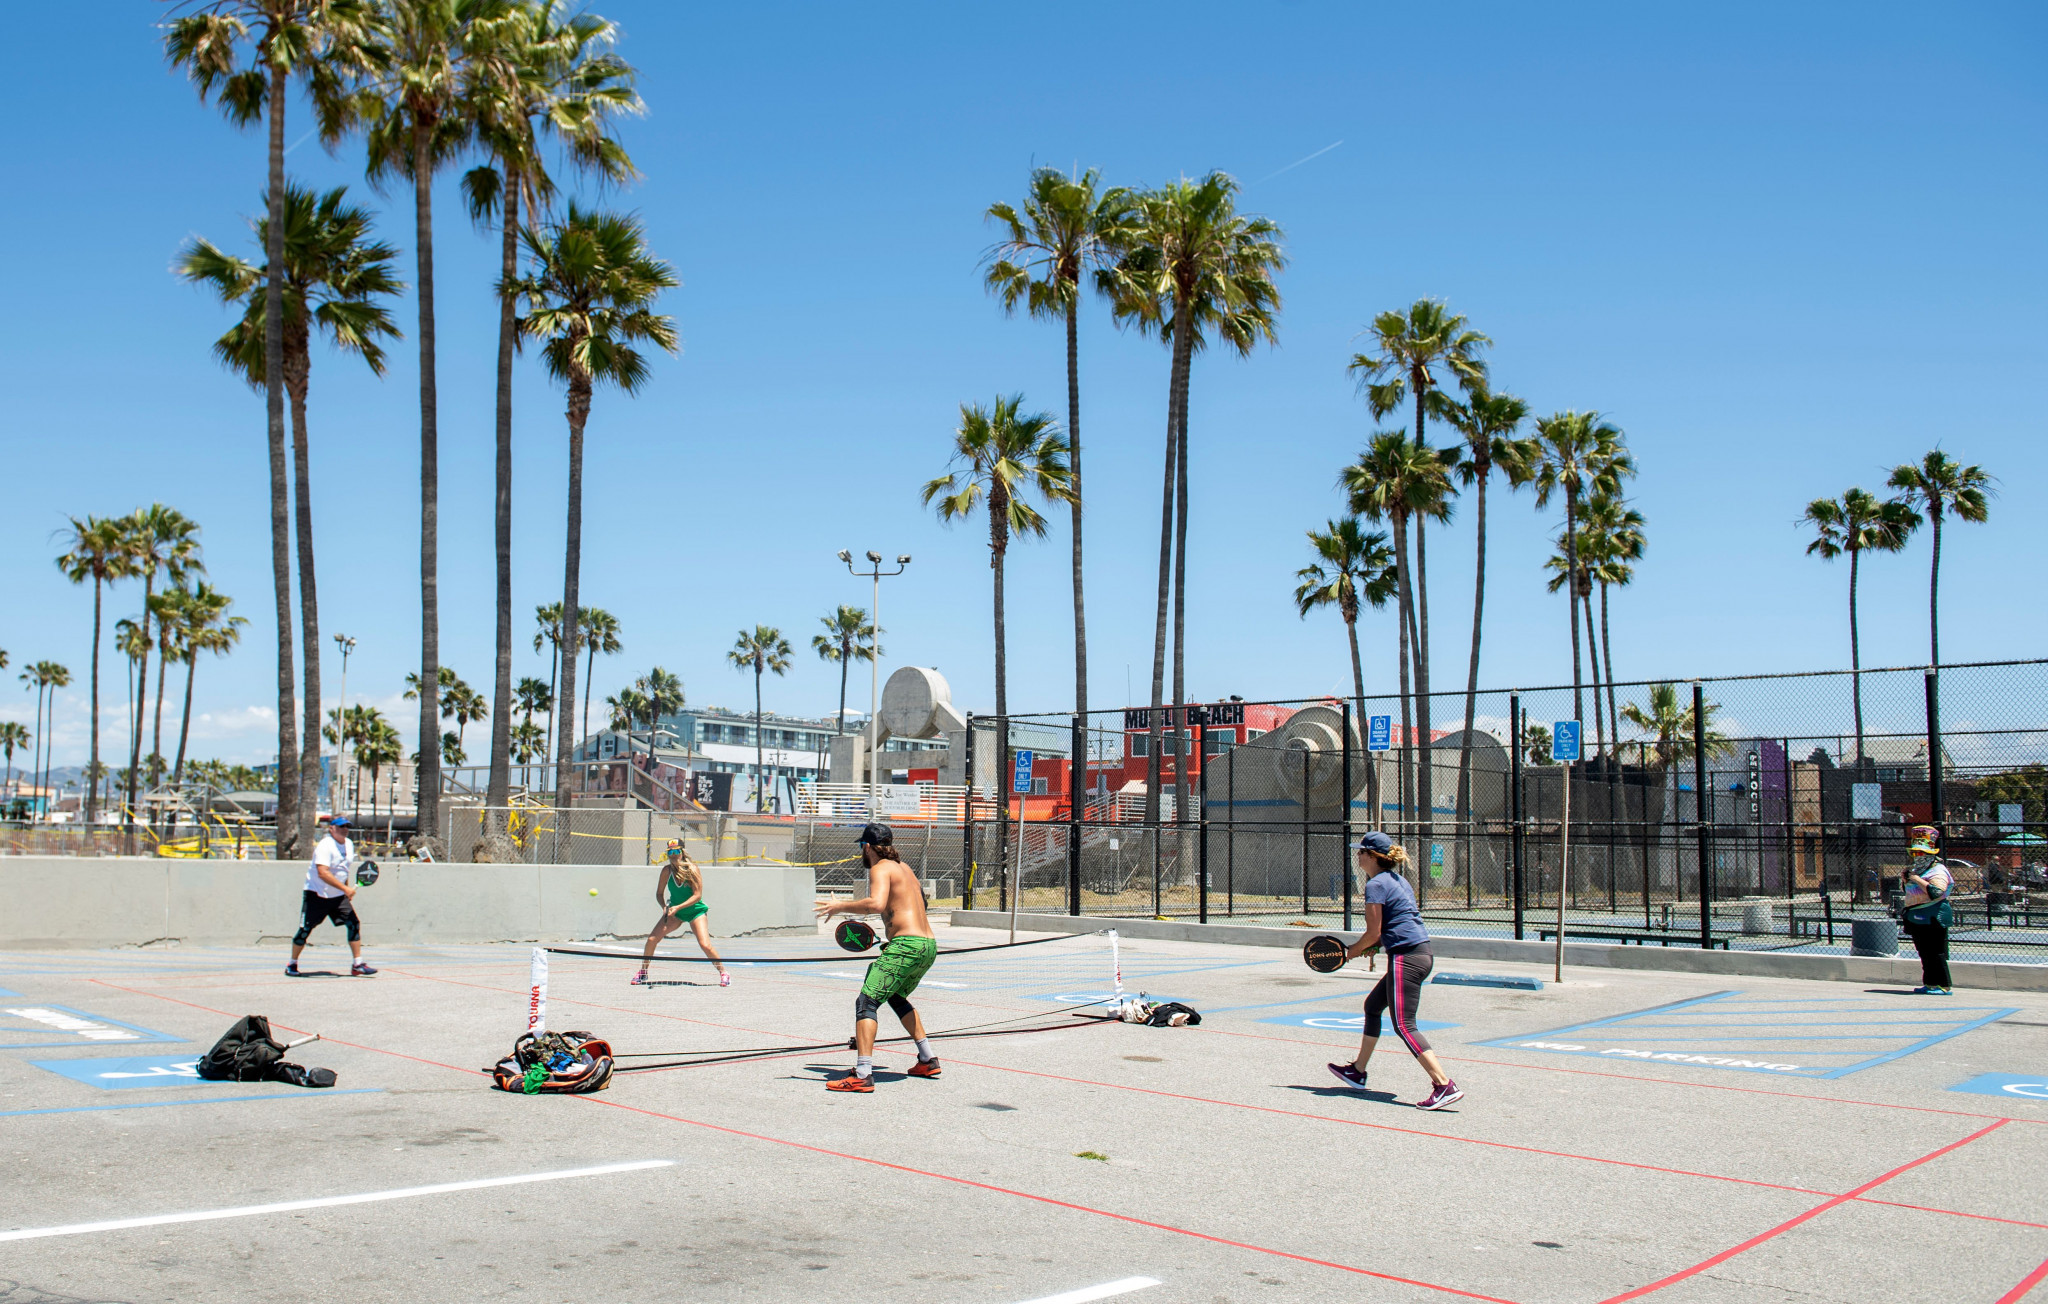 Communal sports are an iconic feature of Los Angeles' Venice Beach but the funding will allow many more facilities to be built and renovated ©Getty Images